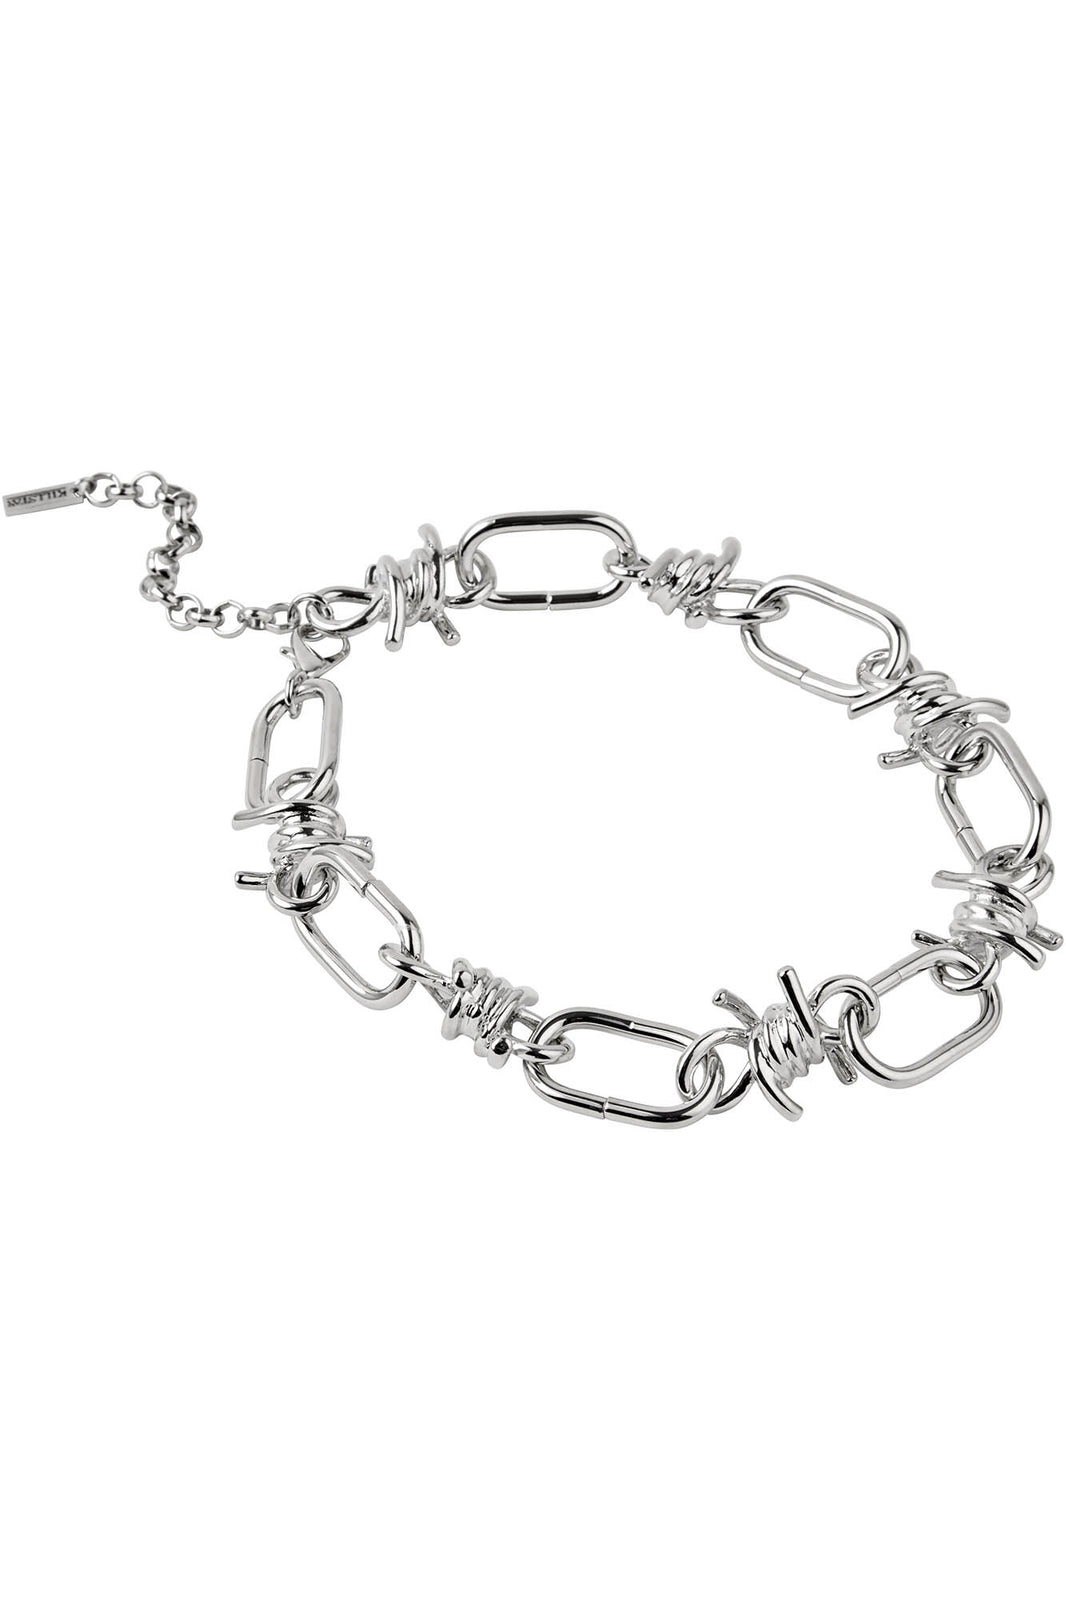 Wired Chain Choker [S]